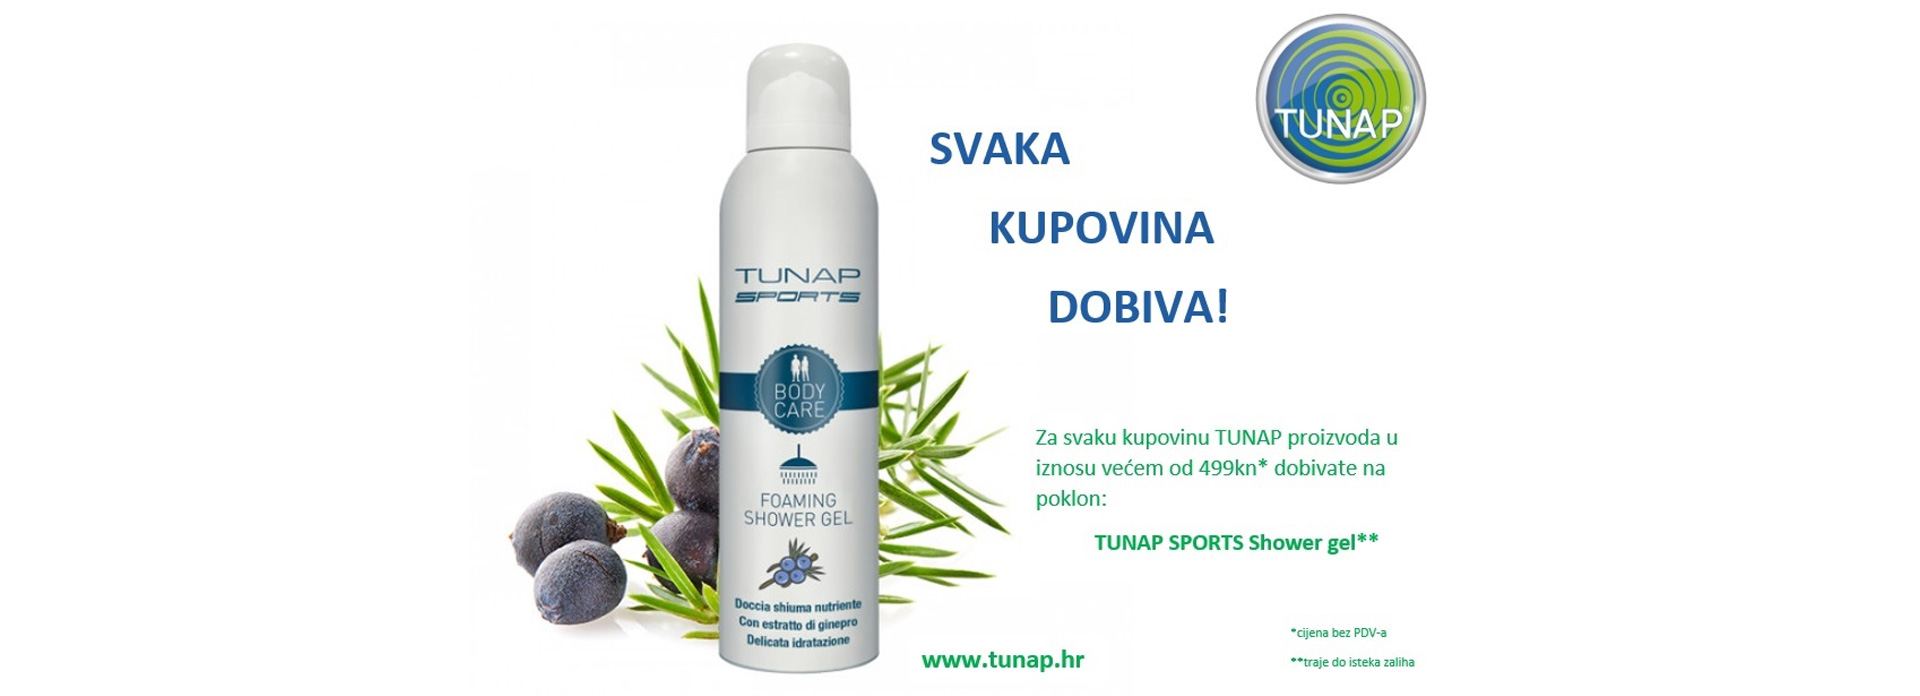 https://shop.jasmin-maziva.hr/Repository/Banners/TUNAP-SPORTS-SHOWER-GEL.jpg